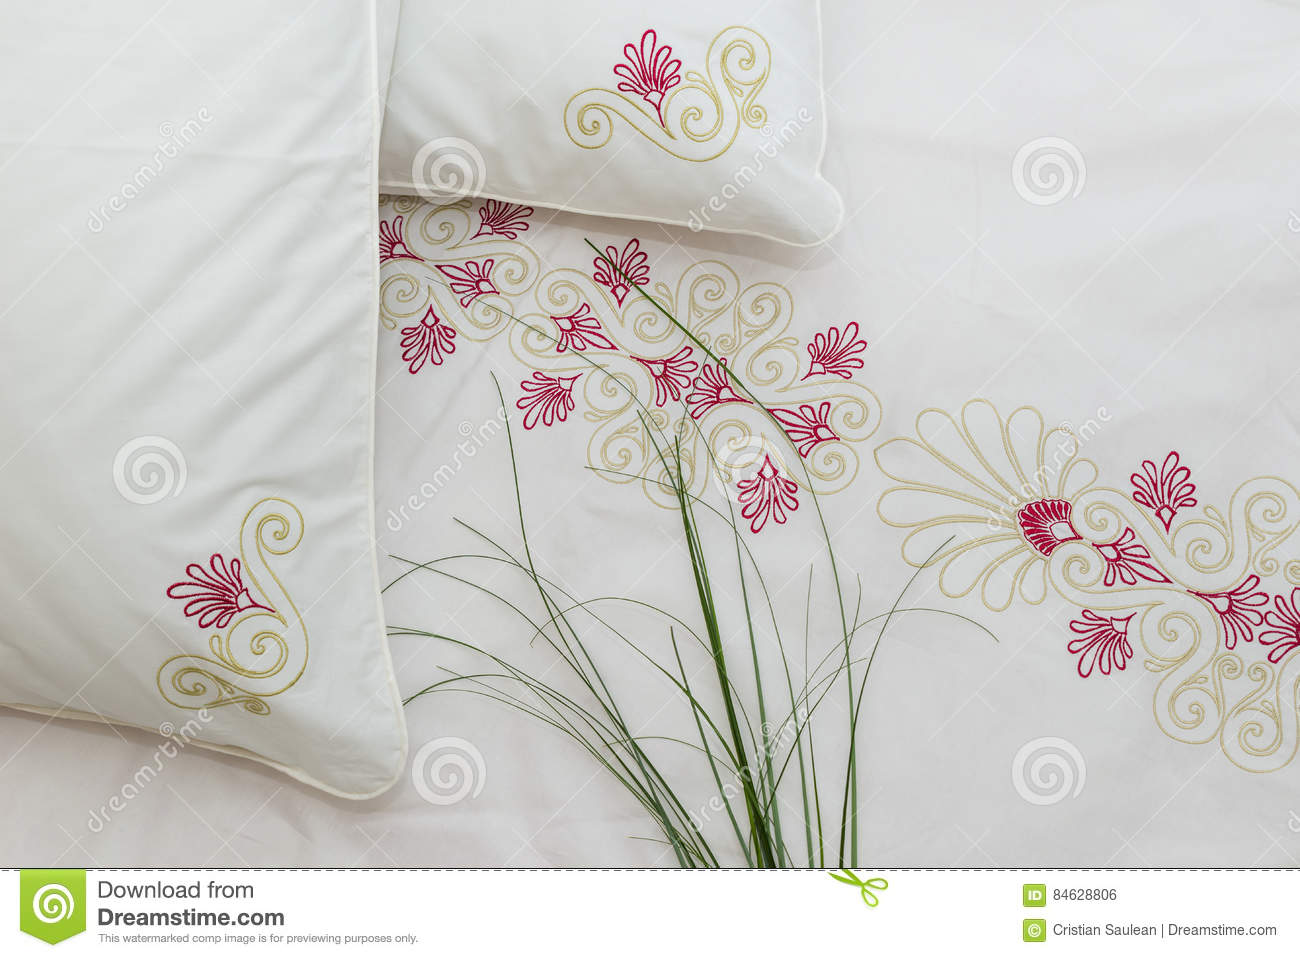 Download Embroidered bedding stock photo. Image of residential - 84628806